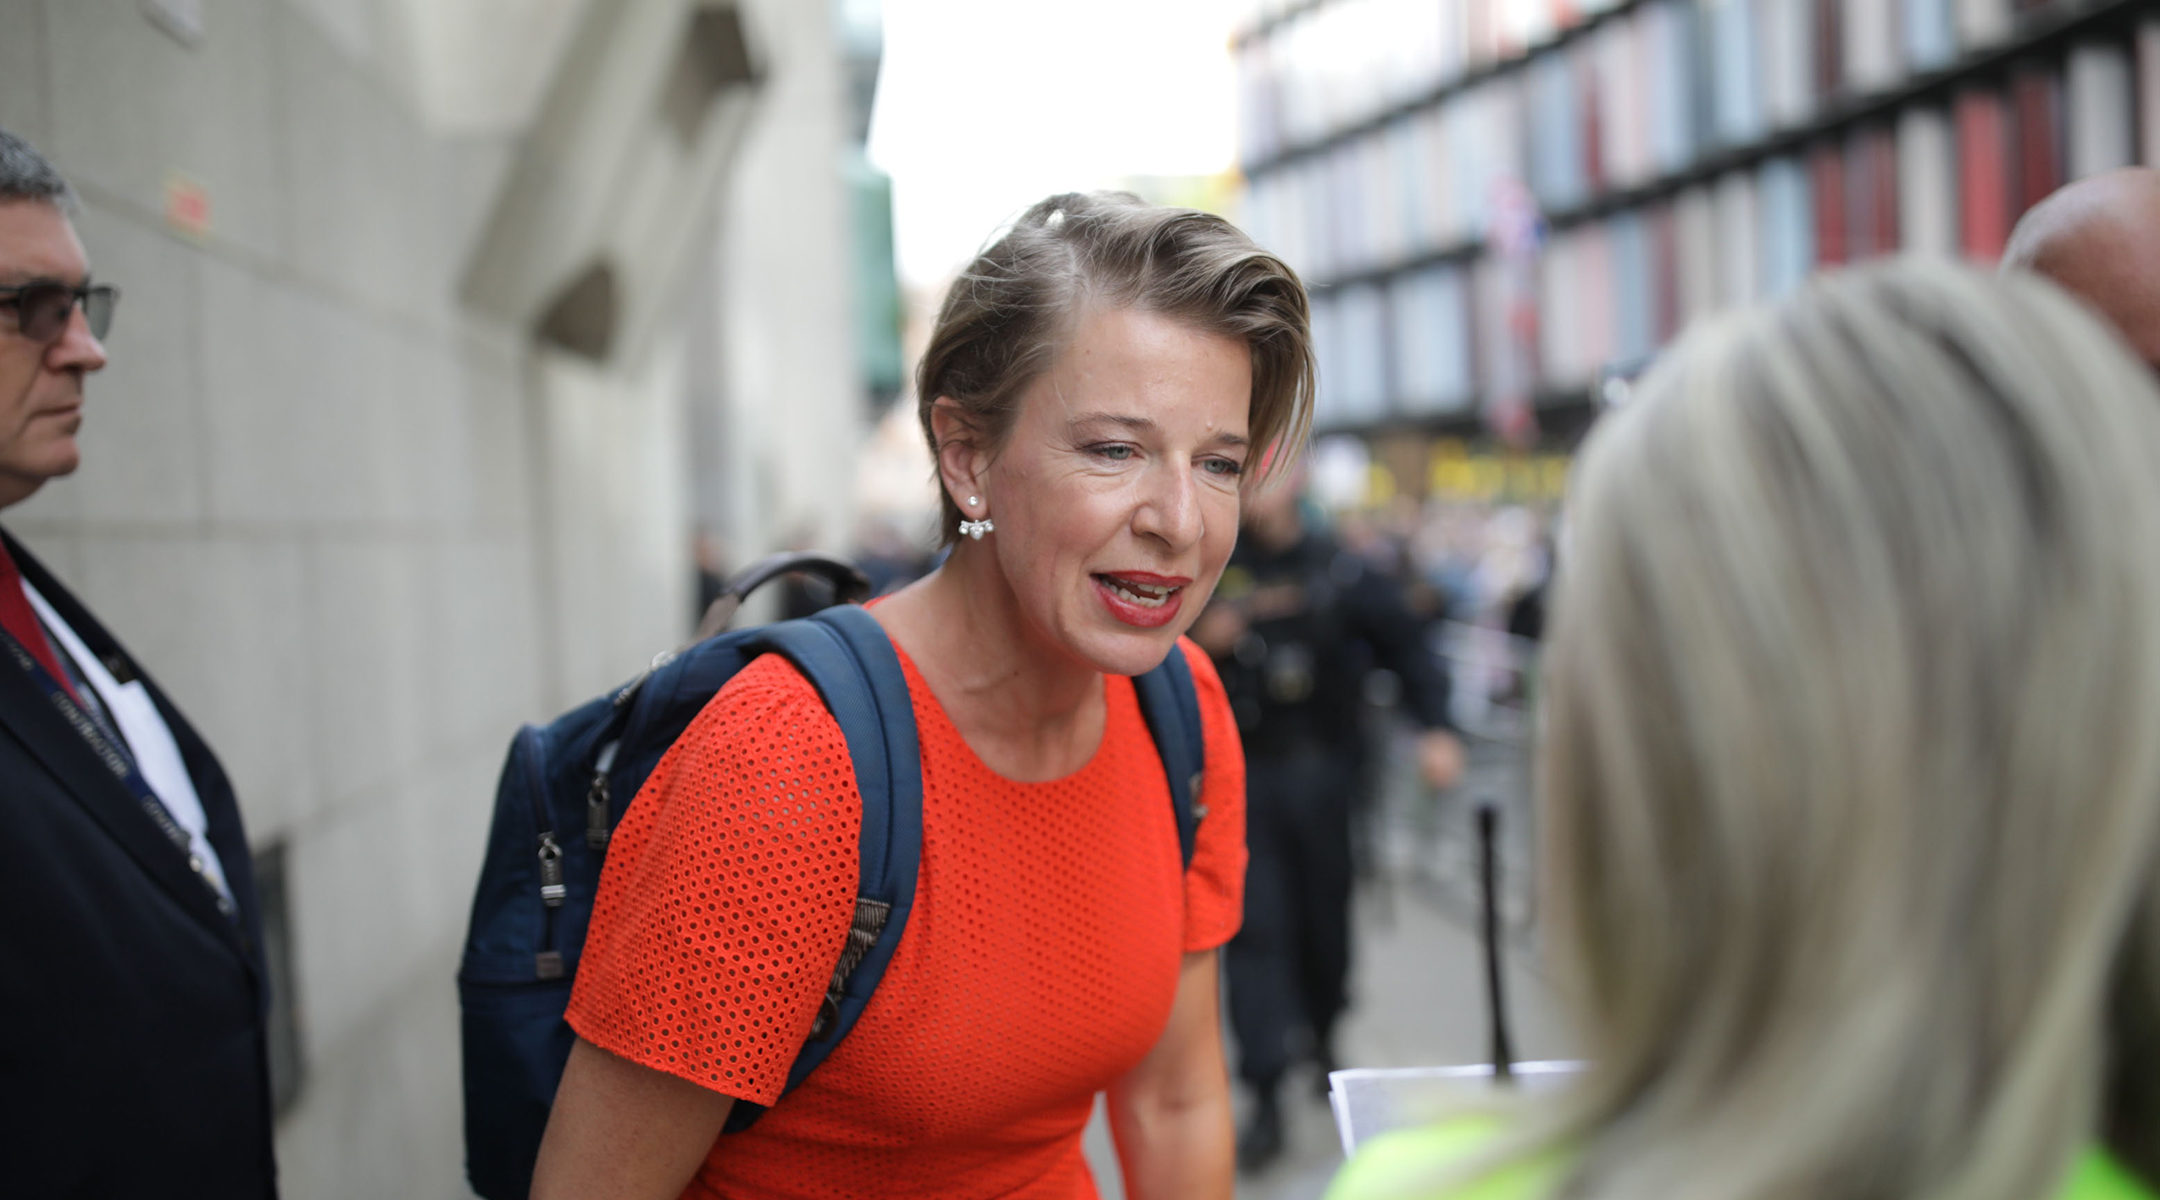 Katie Hopkins attending a protest over the jailing of the far-right activist known as Tommy Robinson in London, England on on July 11, 2019. (Luke Dray/Getty Images)